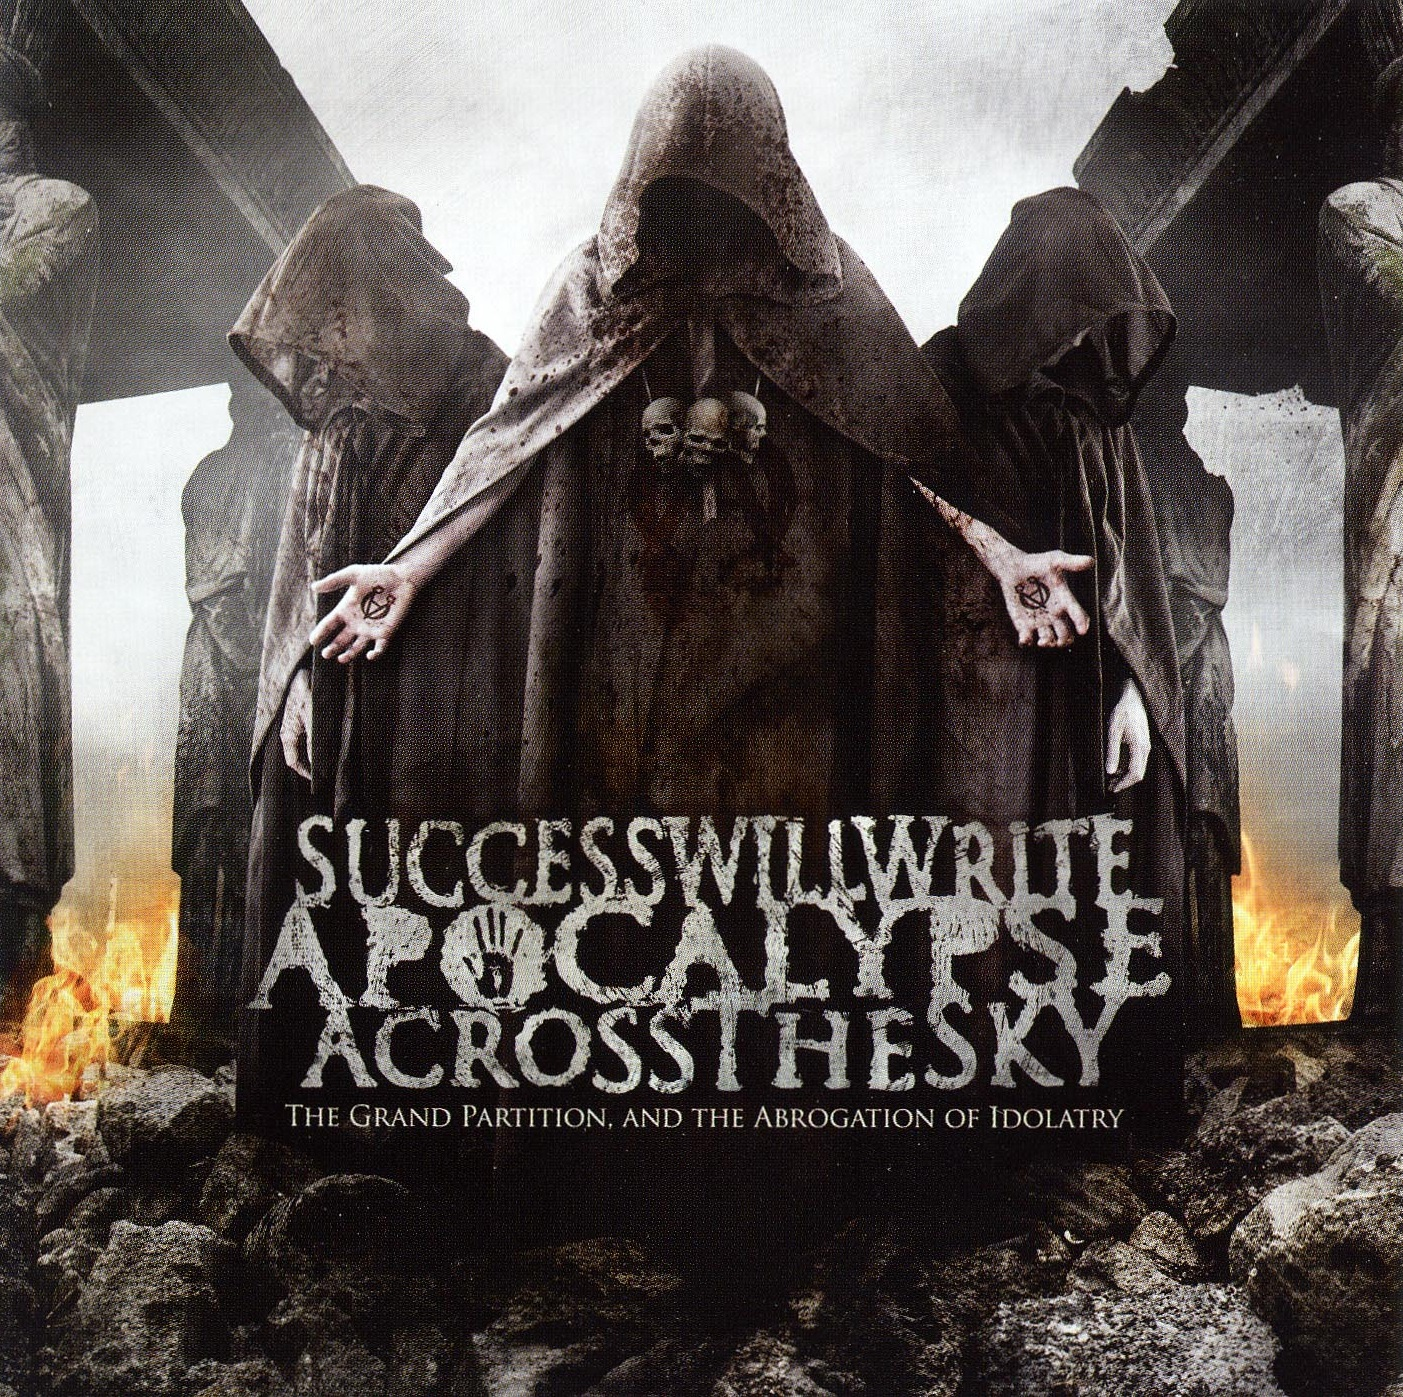 Success Will Write Apocalypse Across the Sky — The Grand Partition and the Abrogation of Idolatry (2009)